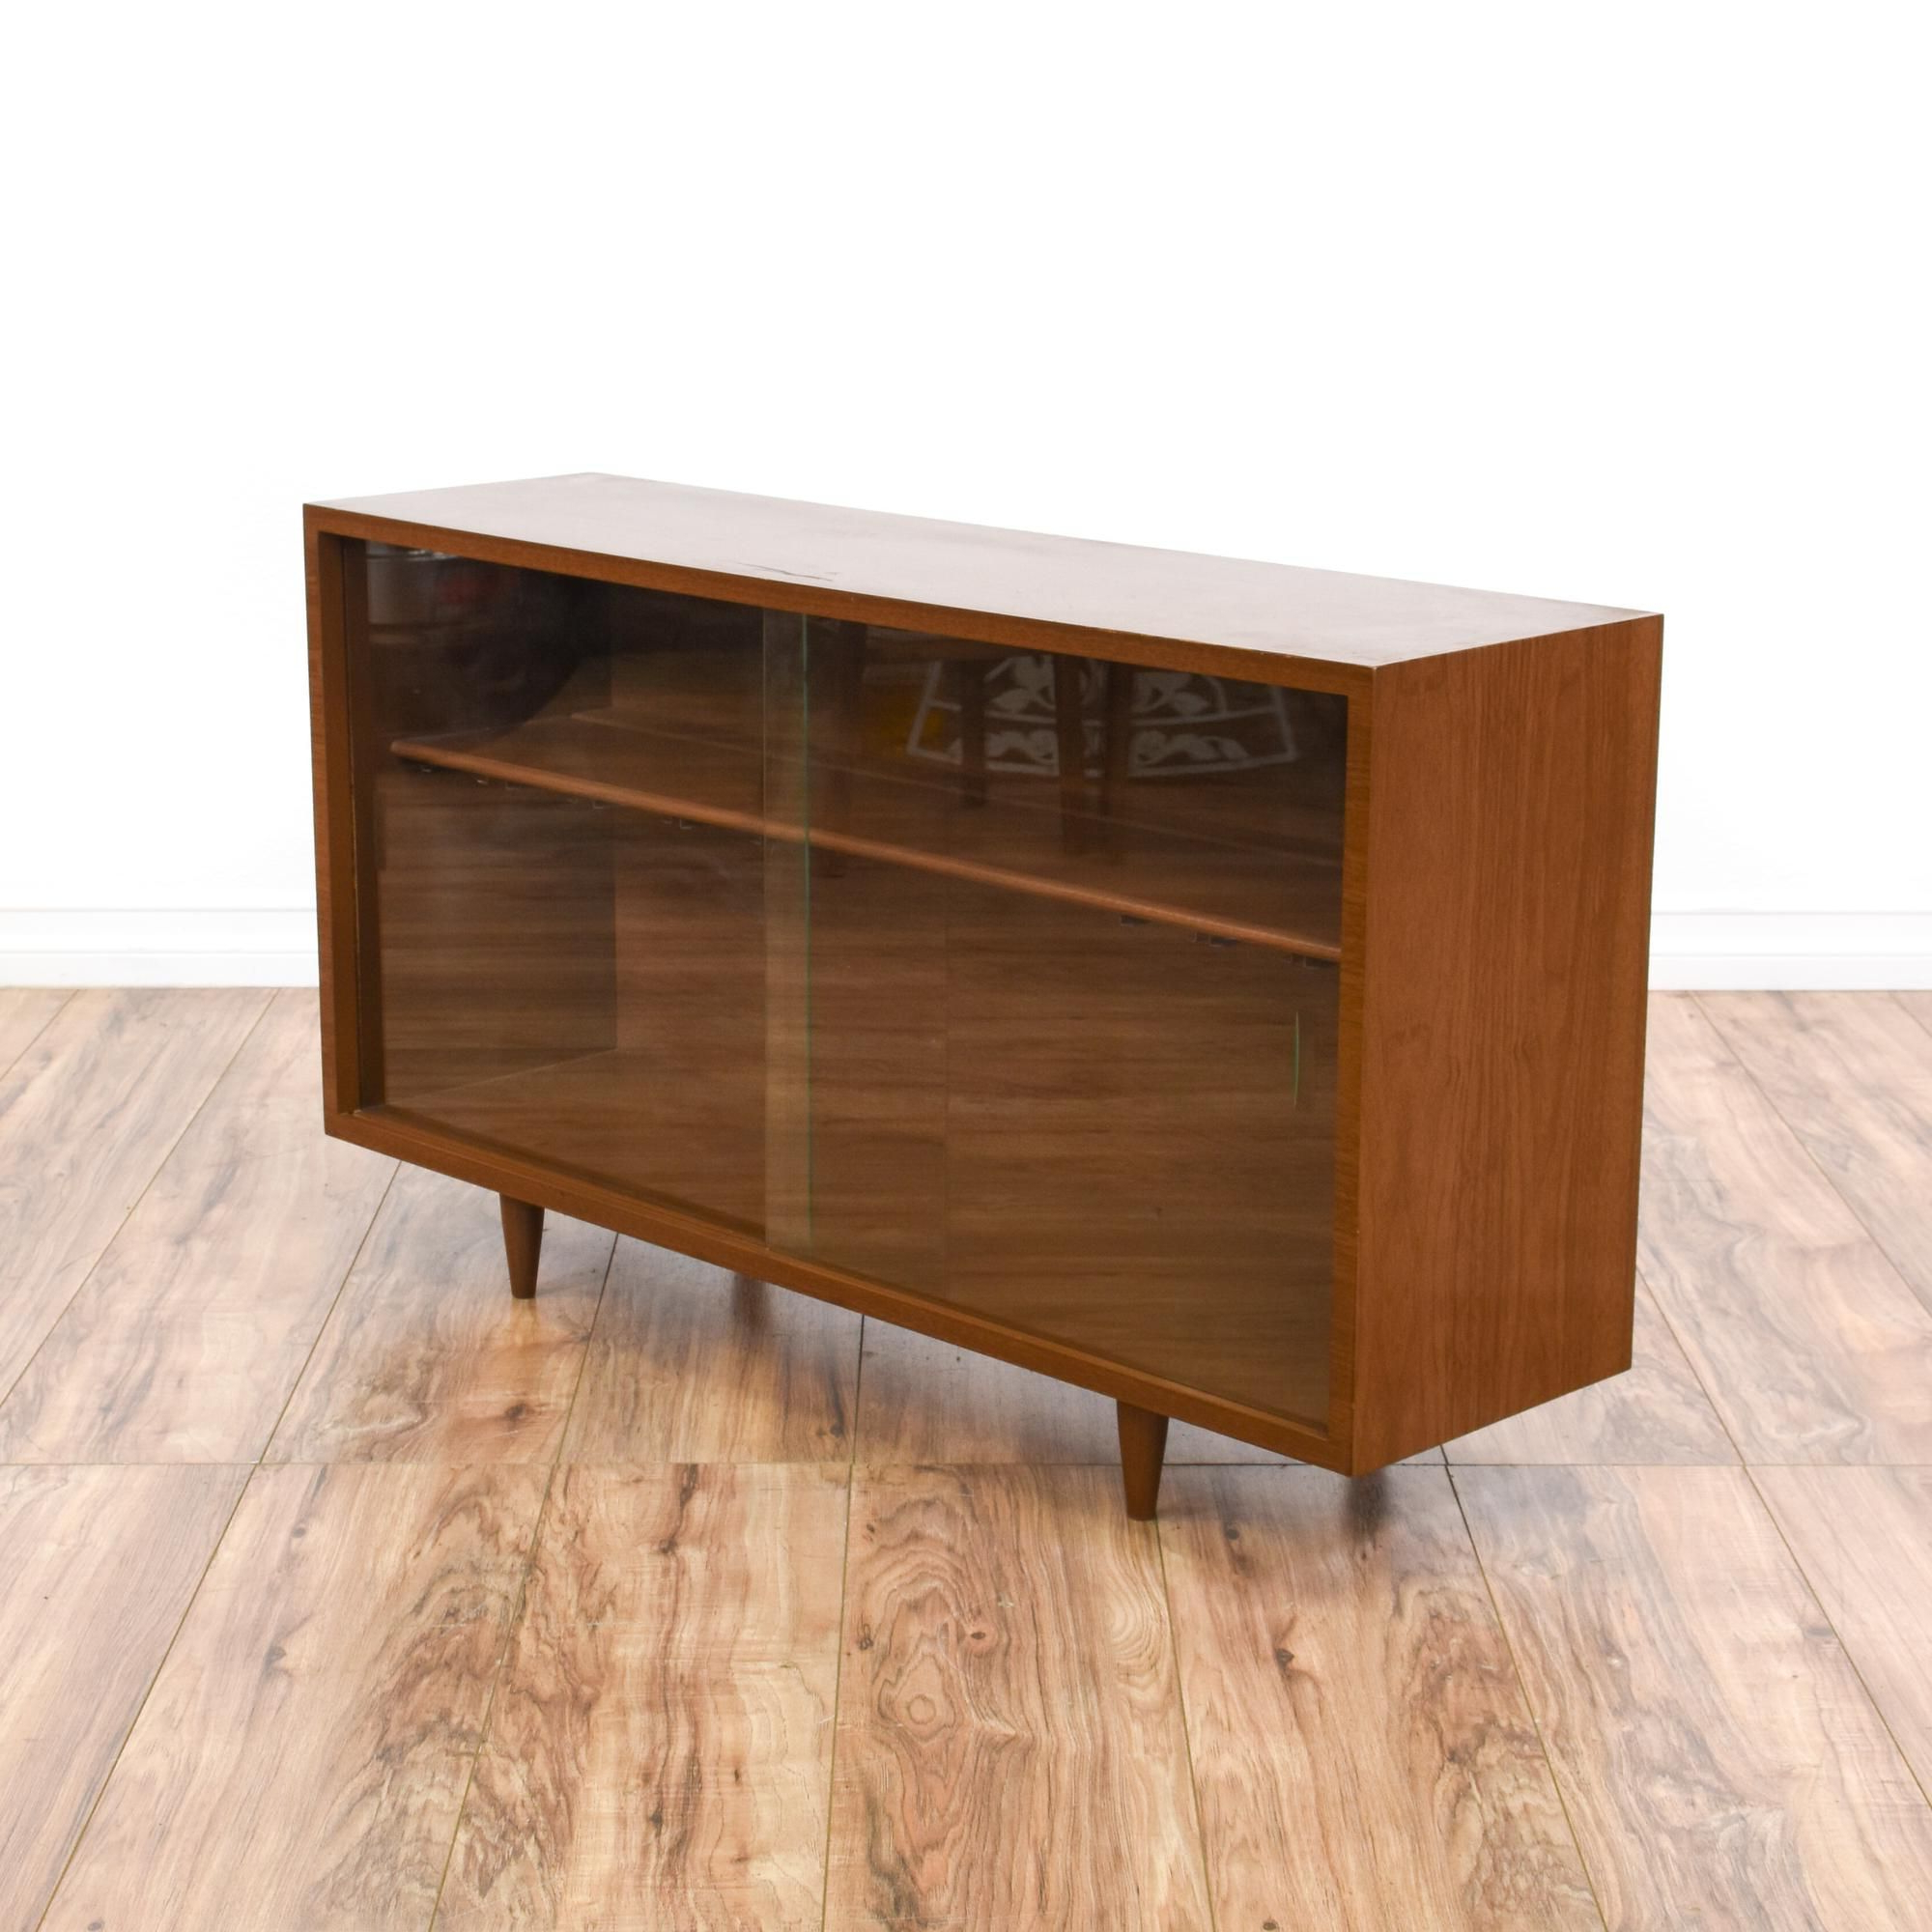 This Low Mid Century Modern Display Case Is Featured In A In Mid Century Retro Modern Oak And Espresso Wood Buffets (View 19 of 20)